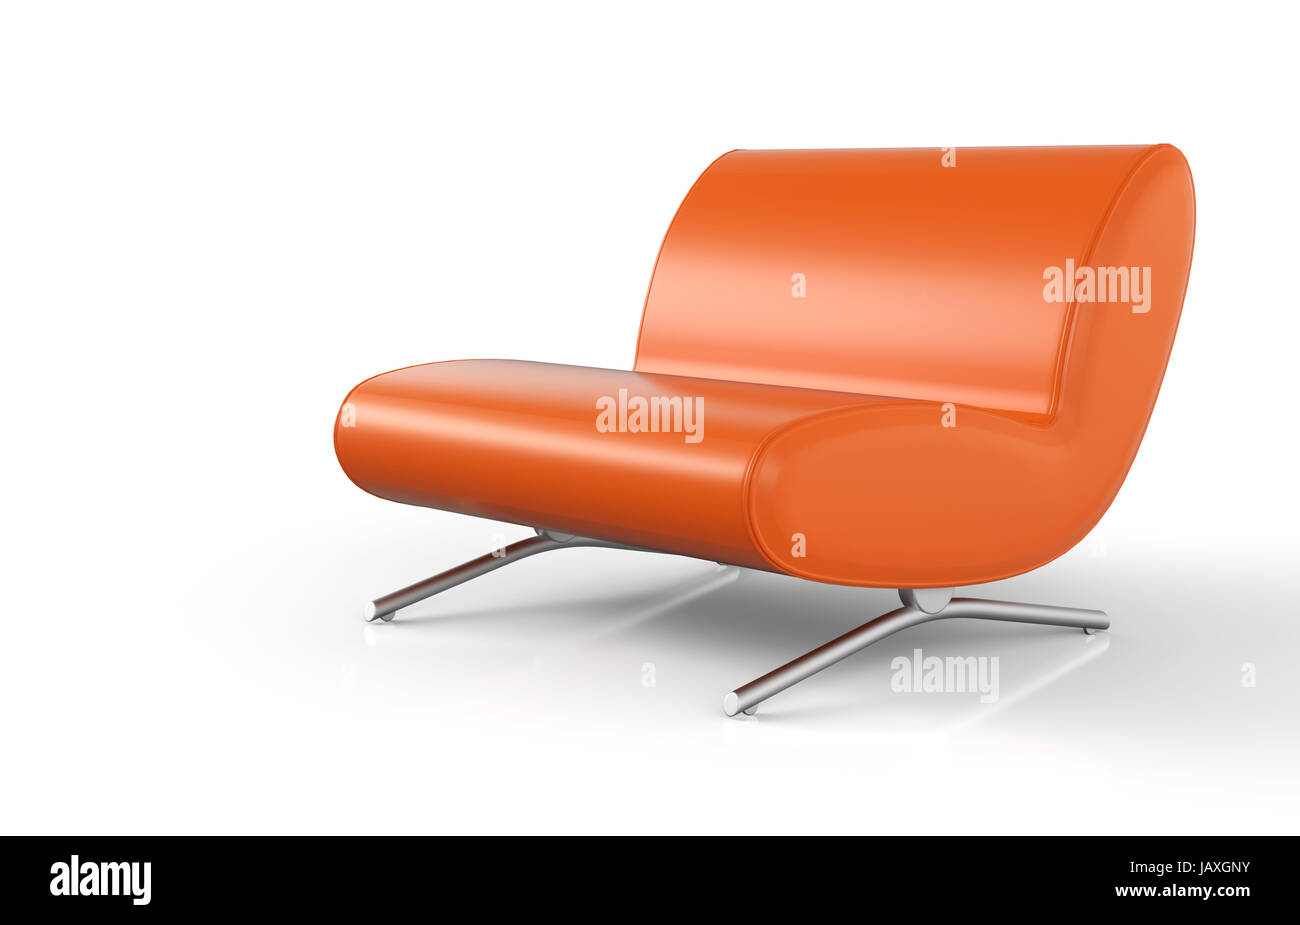 Ergonomischer Designer Sessel Orange Stock Photo 144413415 Alamy